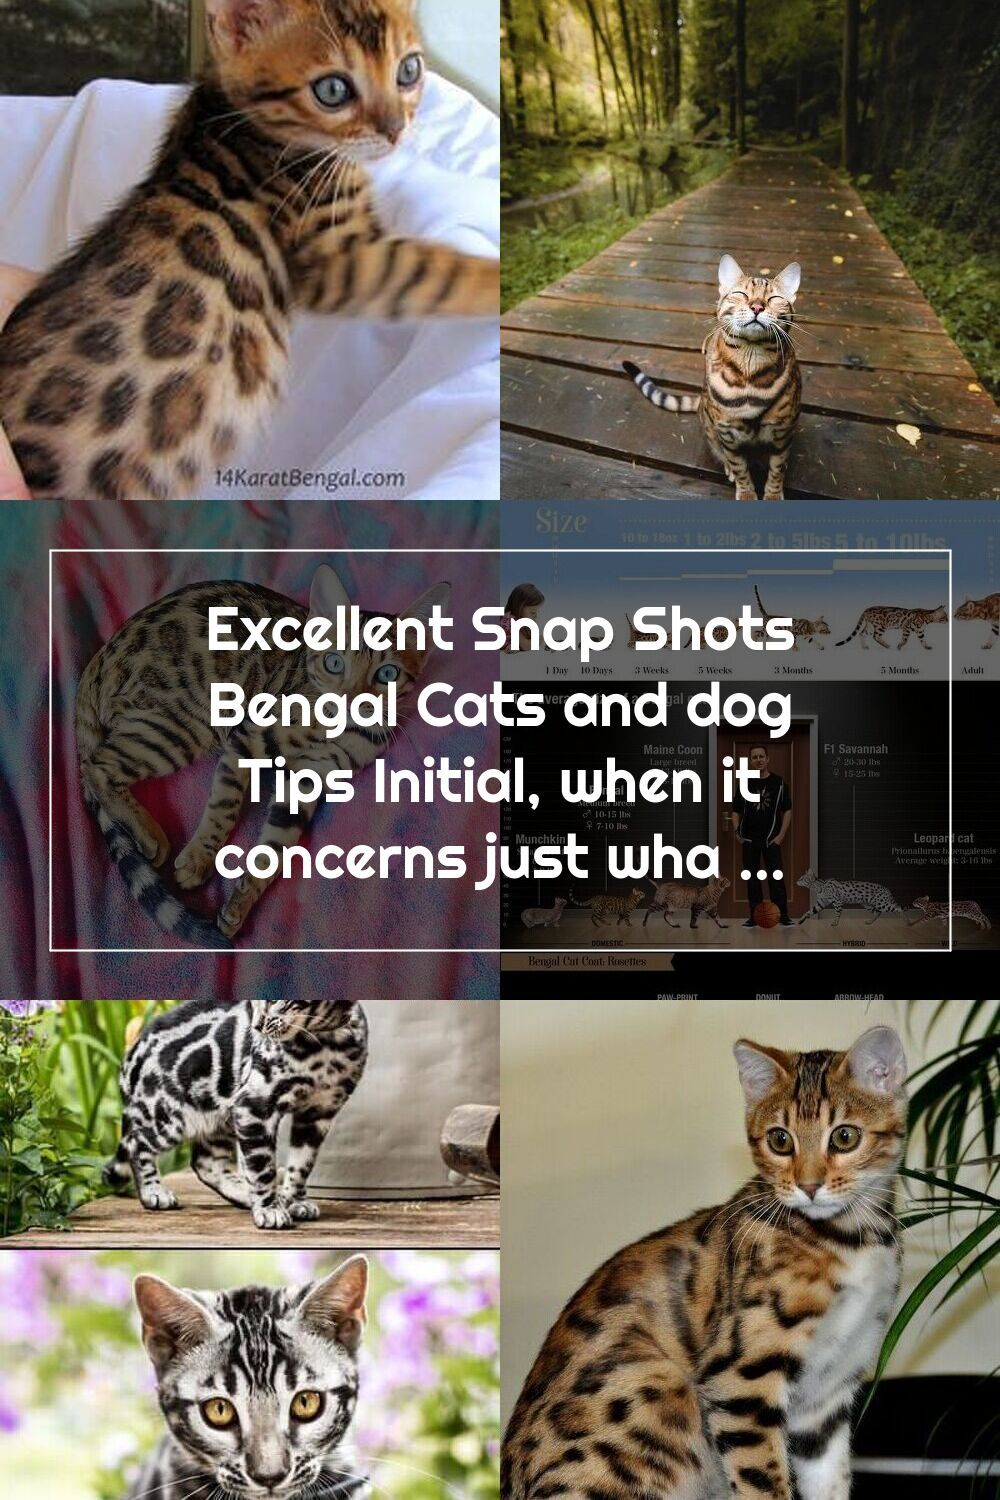 Excellent Snap Shots Bengal Cats And Dog Tips Initial When It Concerns Jus In 2020 Bengal Cat Dog Cat Bengal Kitten